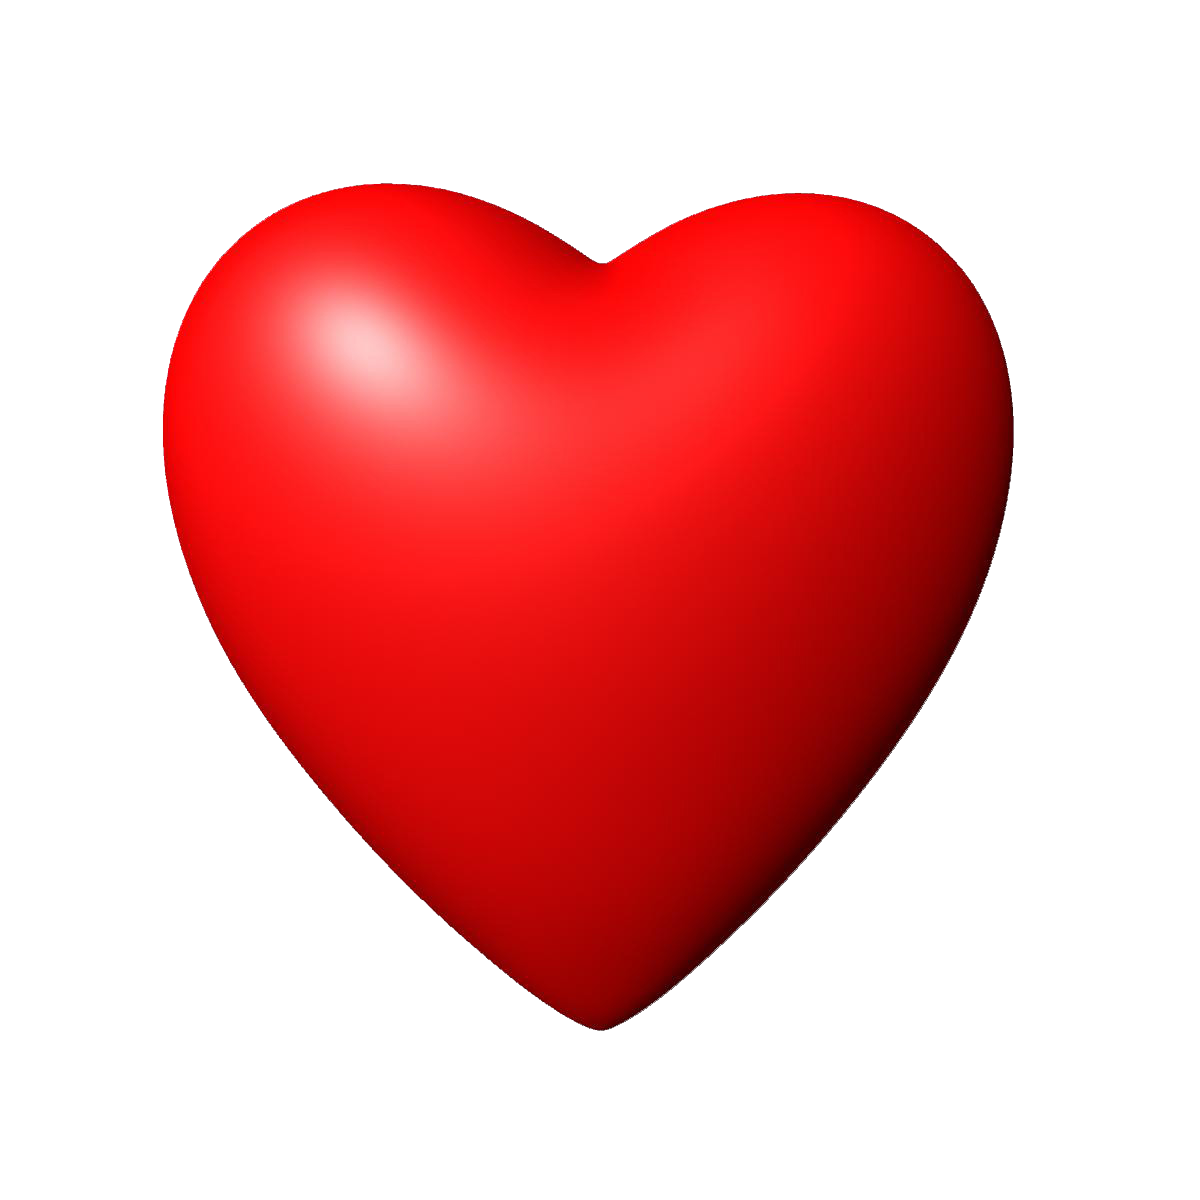 red heart transparent heart images #8059